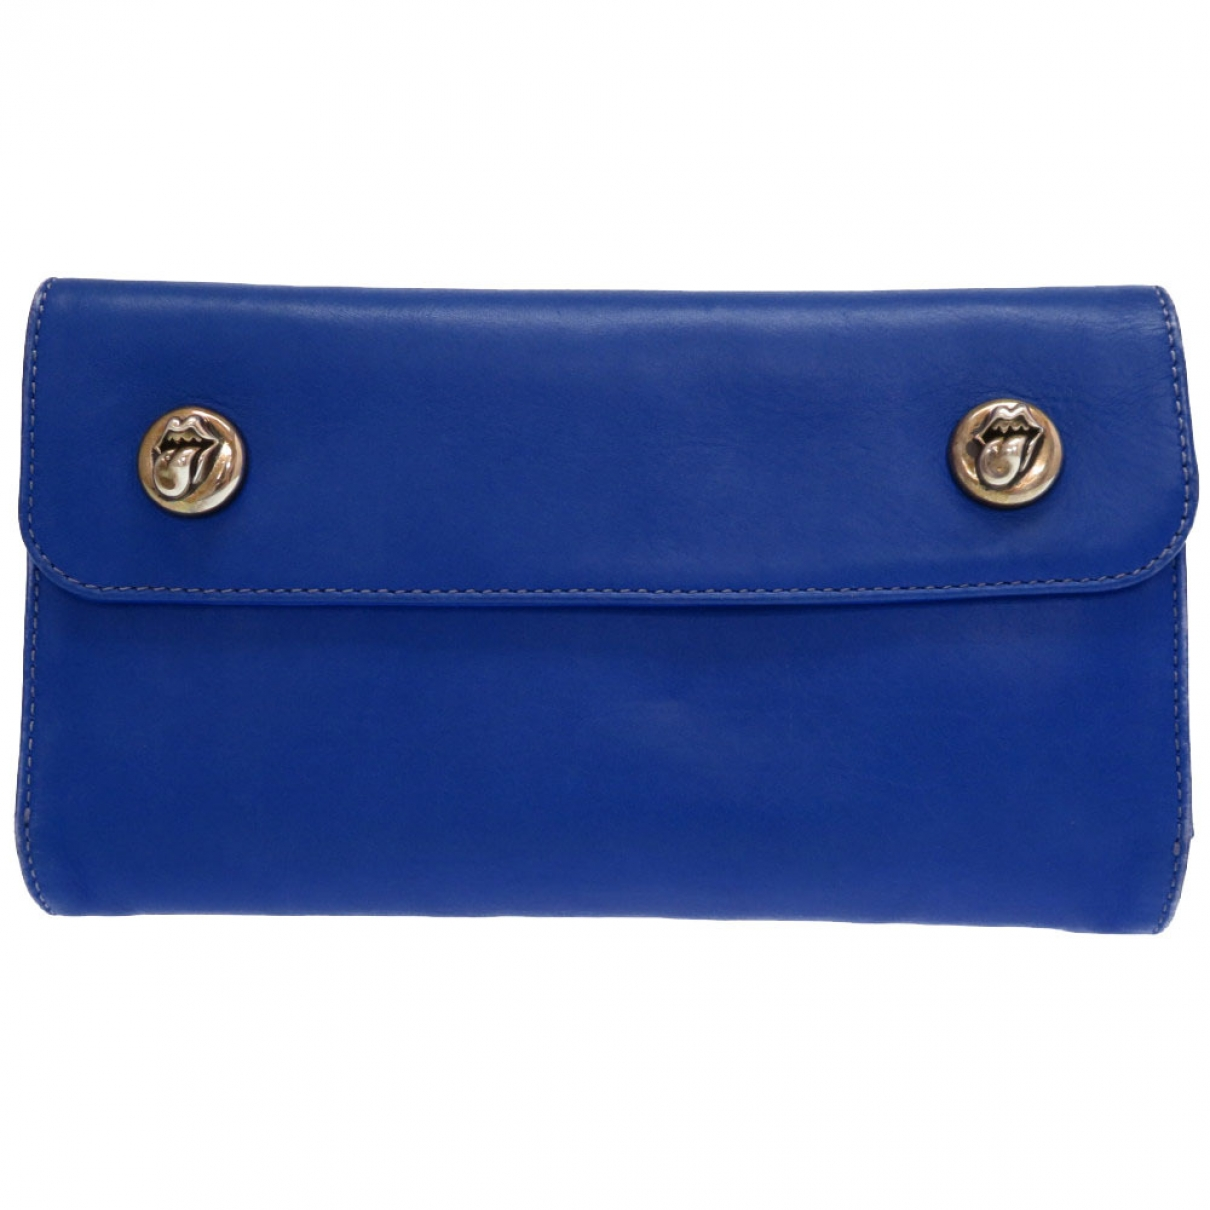 Chrome Hearts \N Blue Leather wallet for Women \N